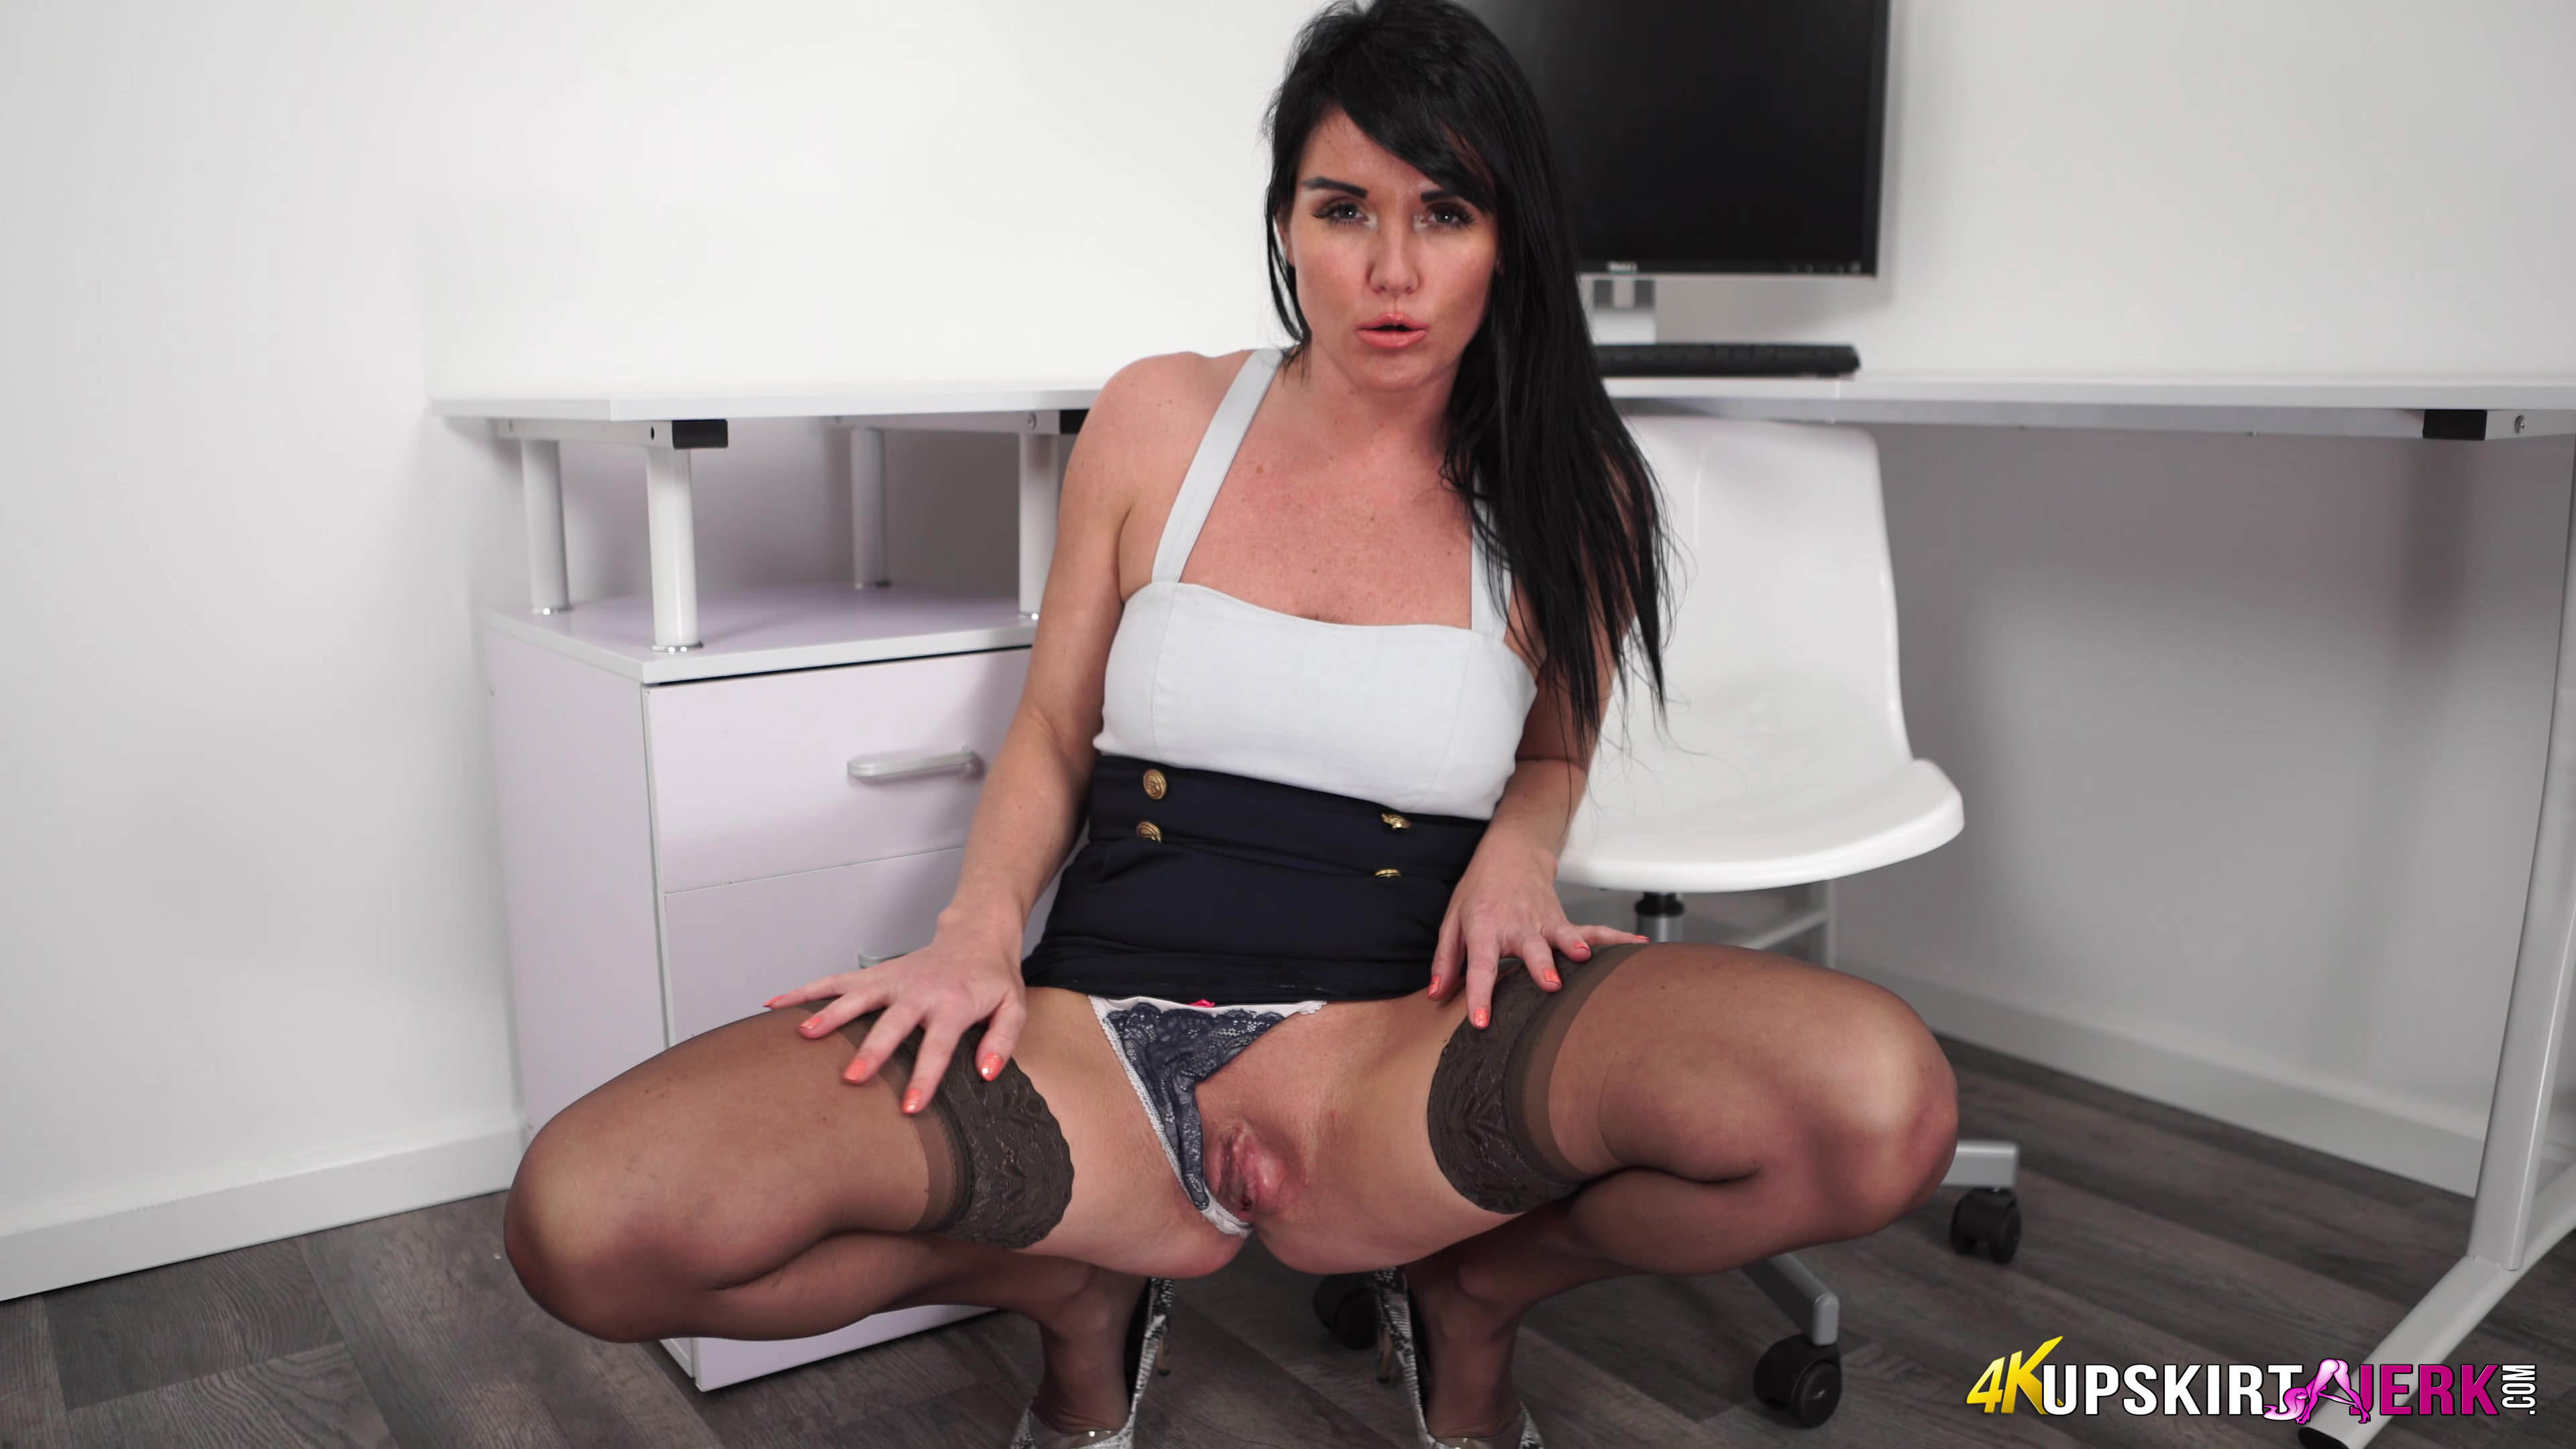 delicious upskirt perversions with prudish british girl  #5